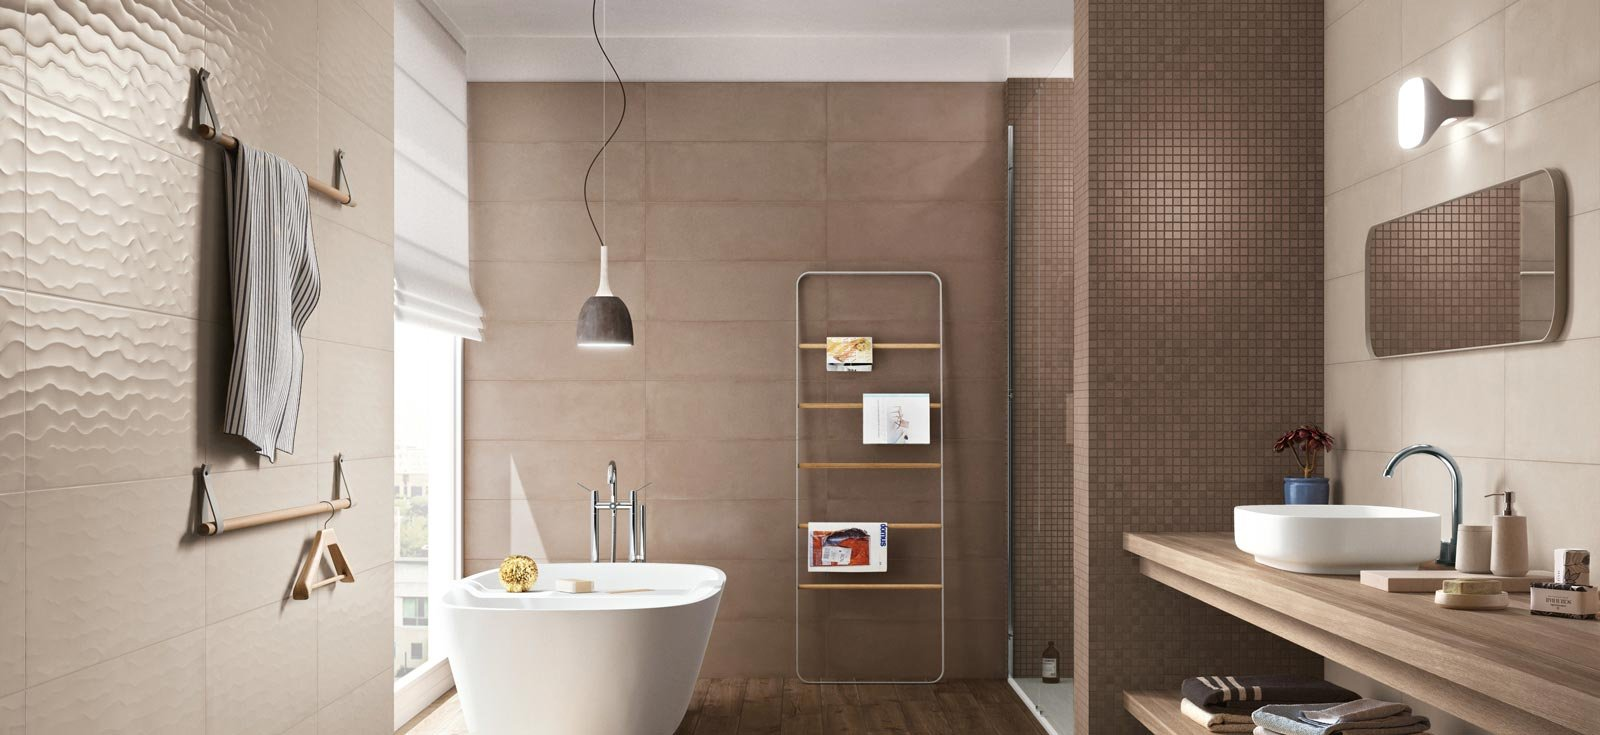 Beautiful Paraspruzzi Vasca Da Bagno Pictures - New Home Design ...